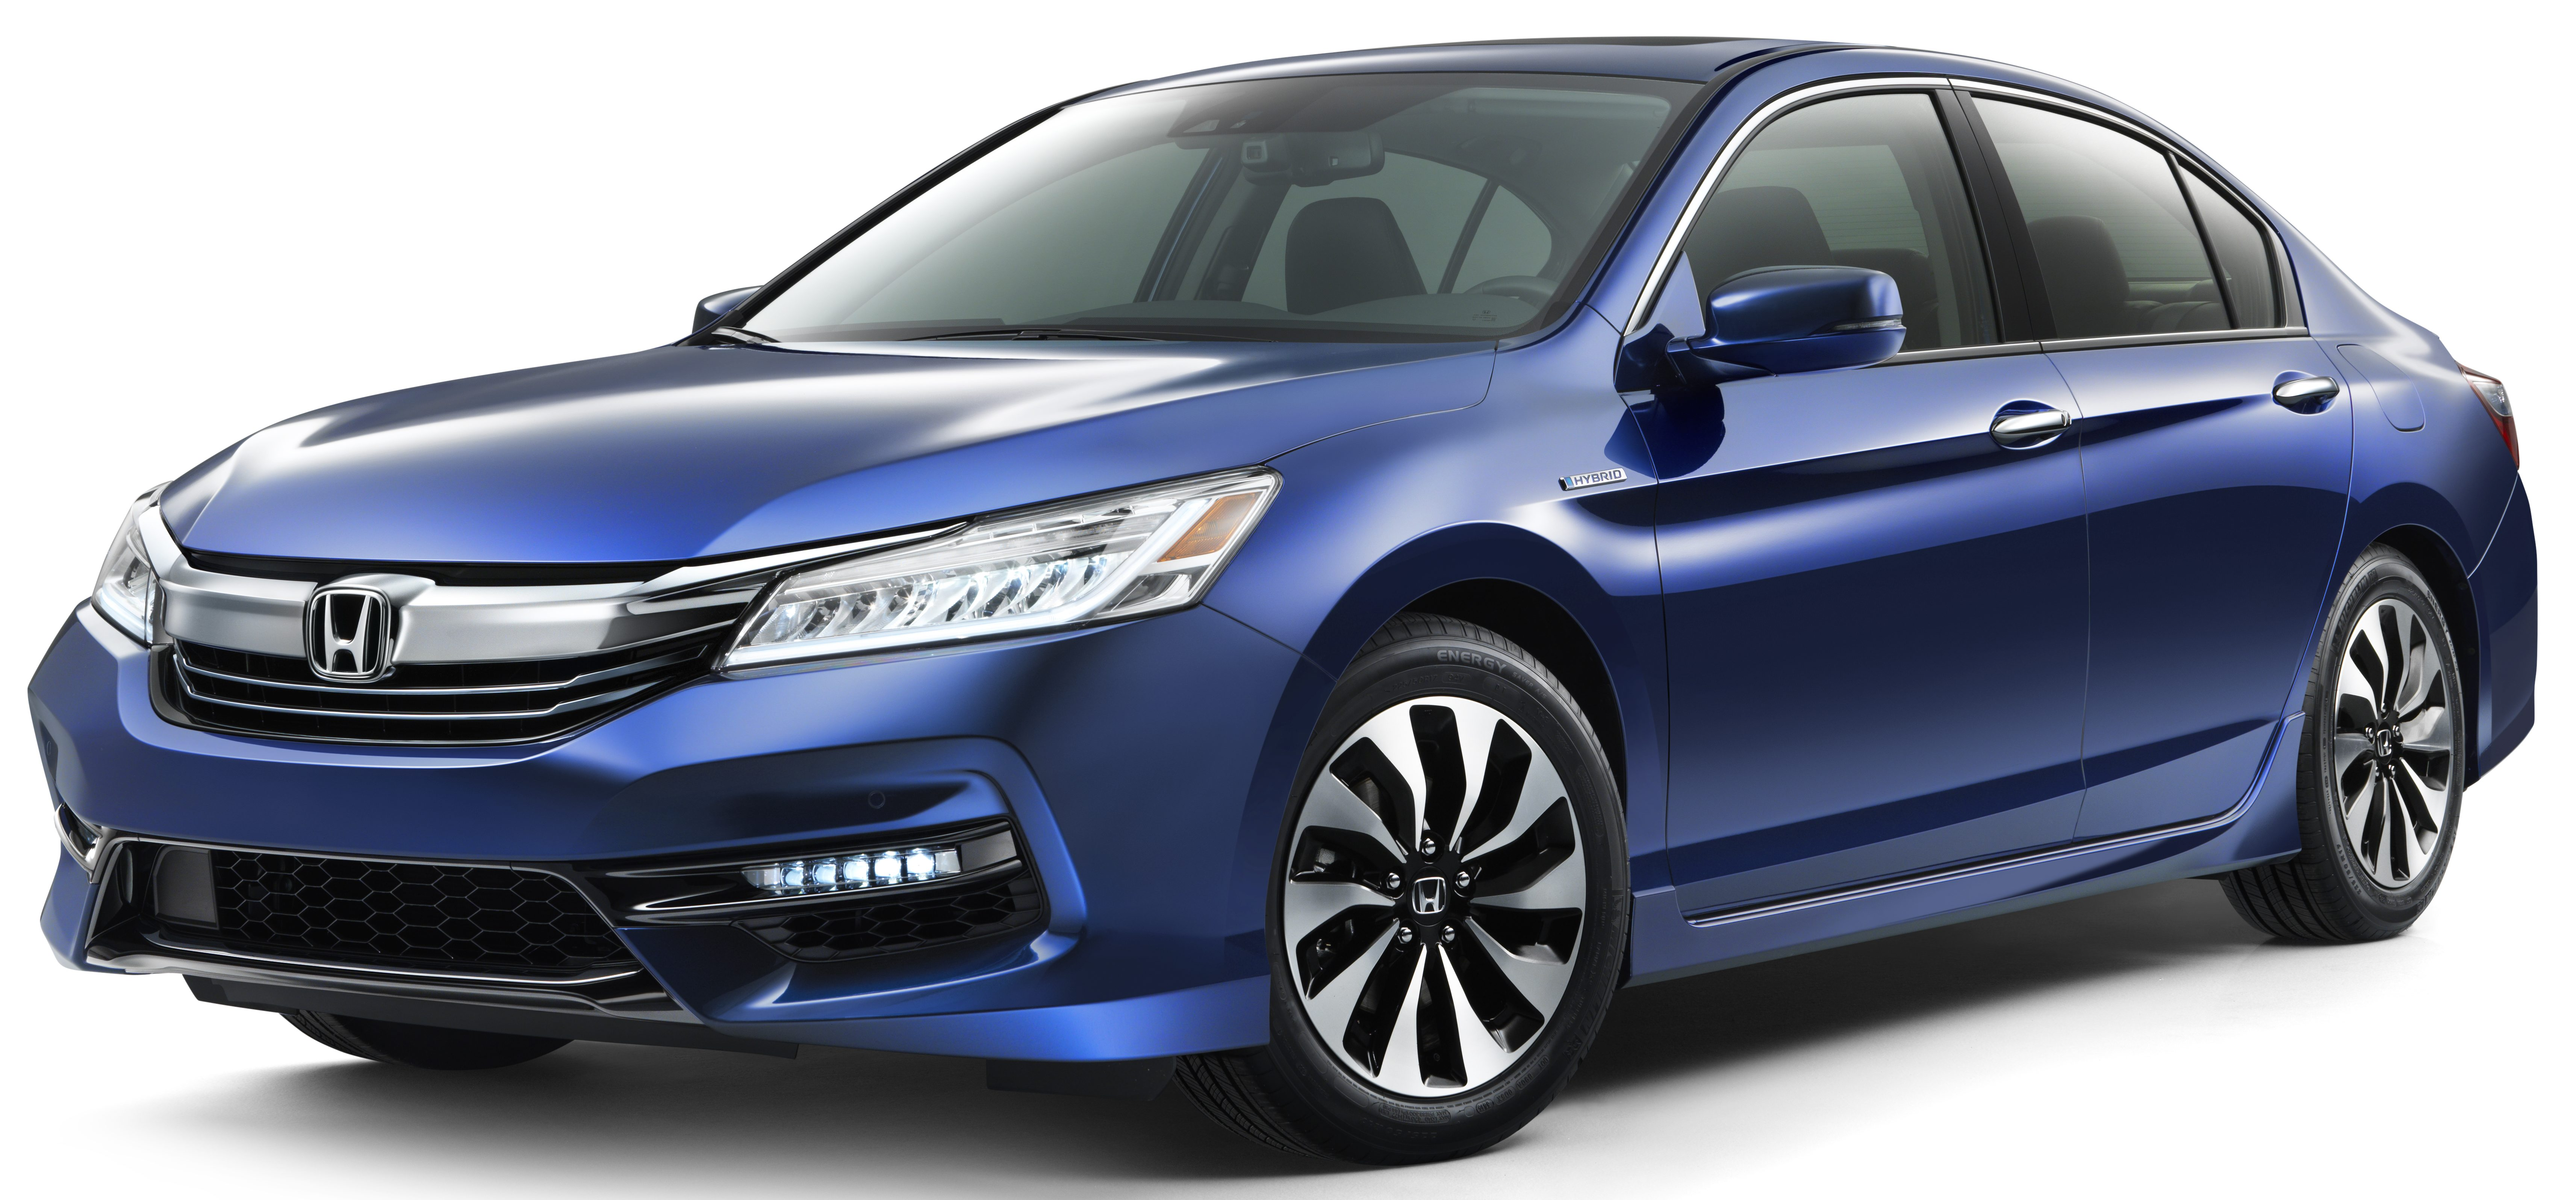 2017 honda accord hybrid revealed up to 20 4 km l for How much is a 2017 honda accord